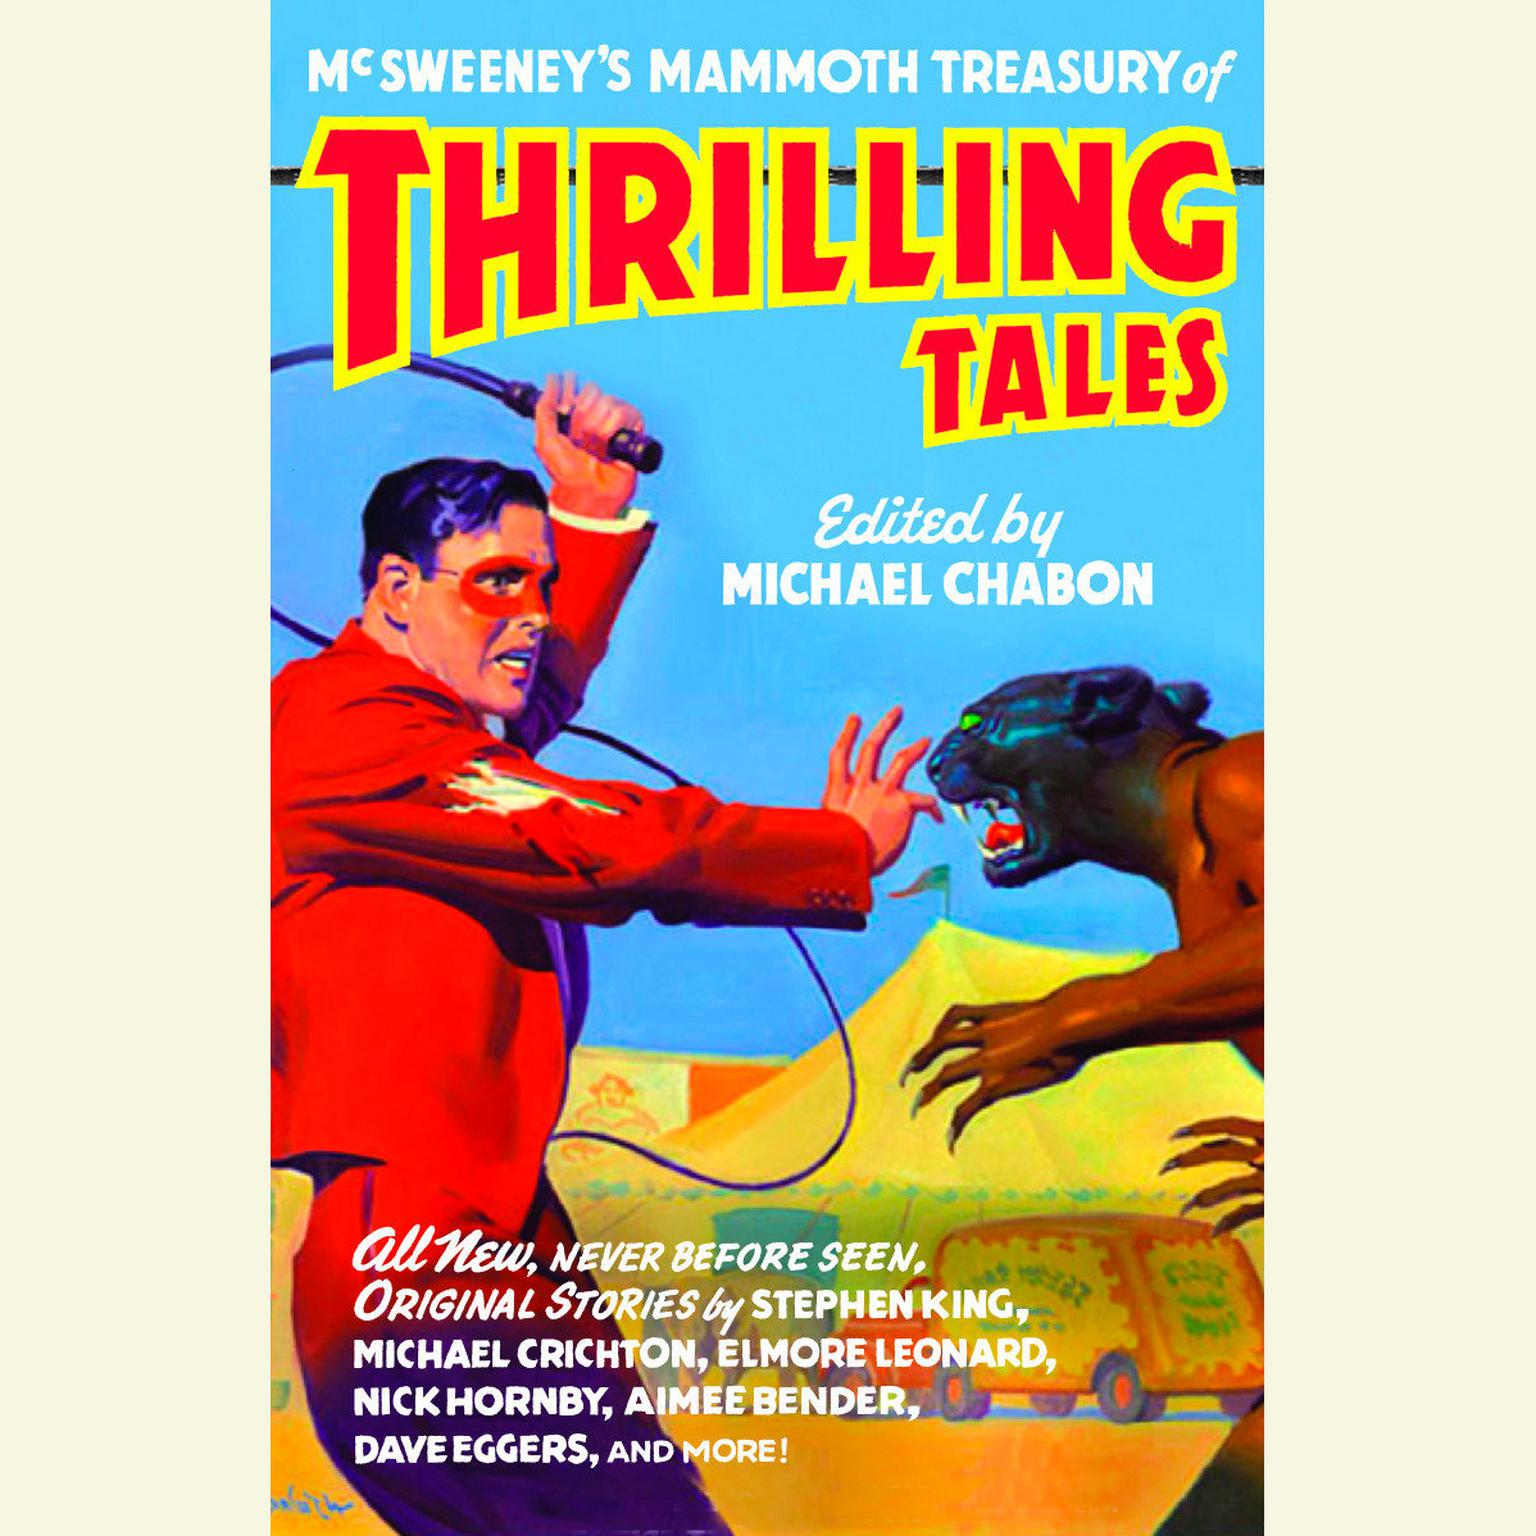 Printable McSweeney's Mammoth Treasury of Thrilling Tales Audiobook Cover Art